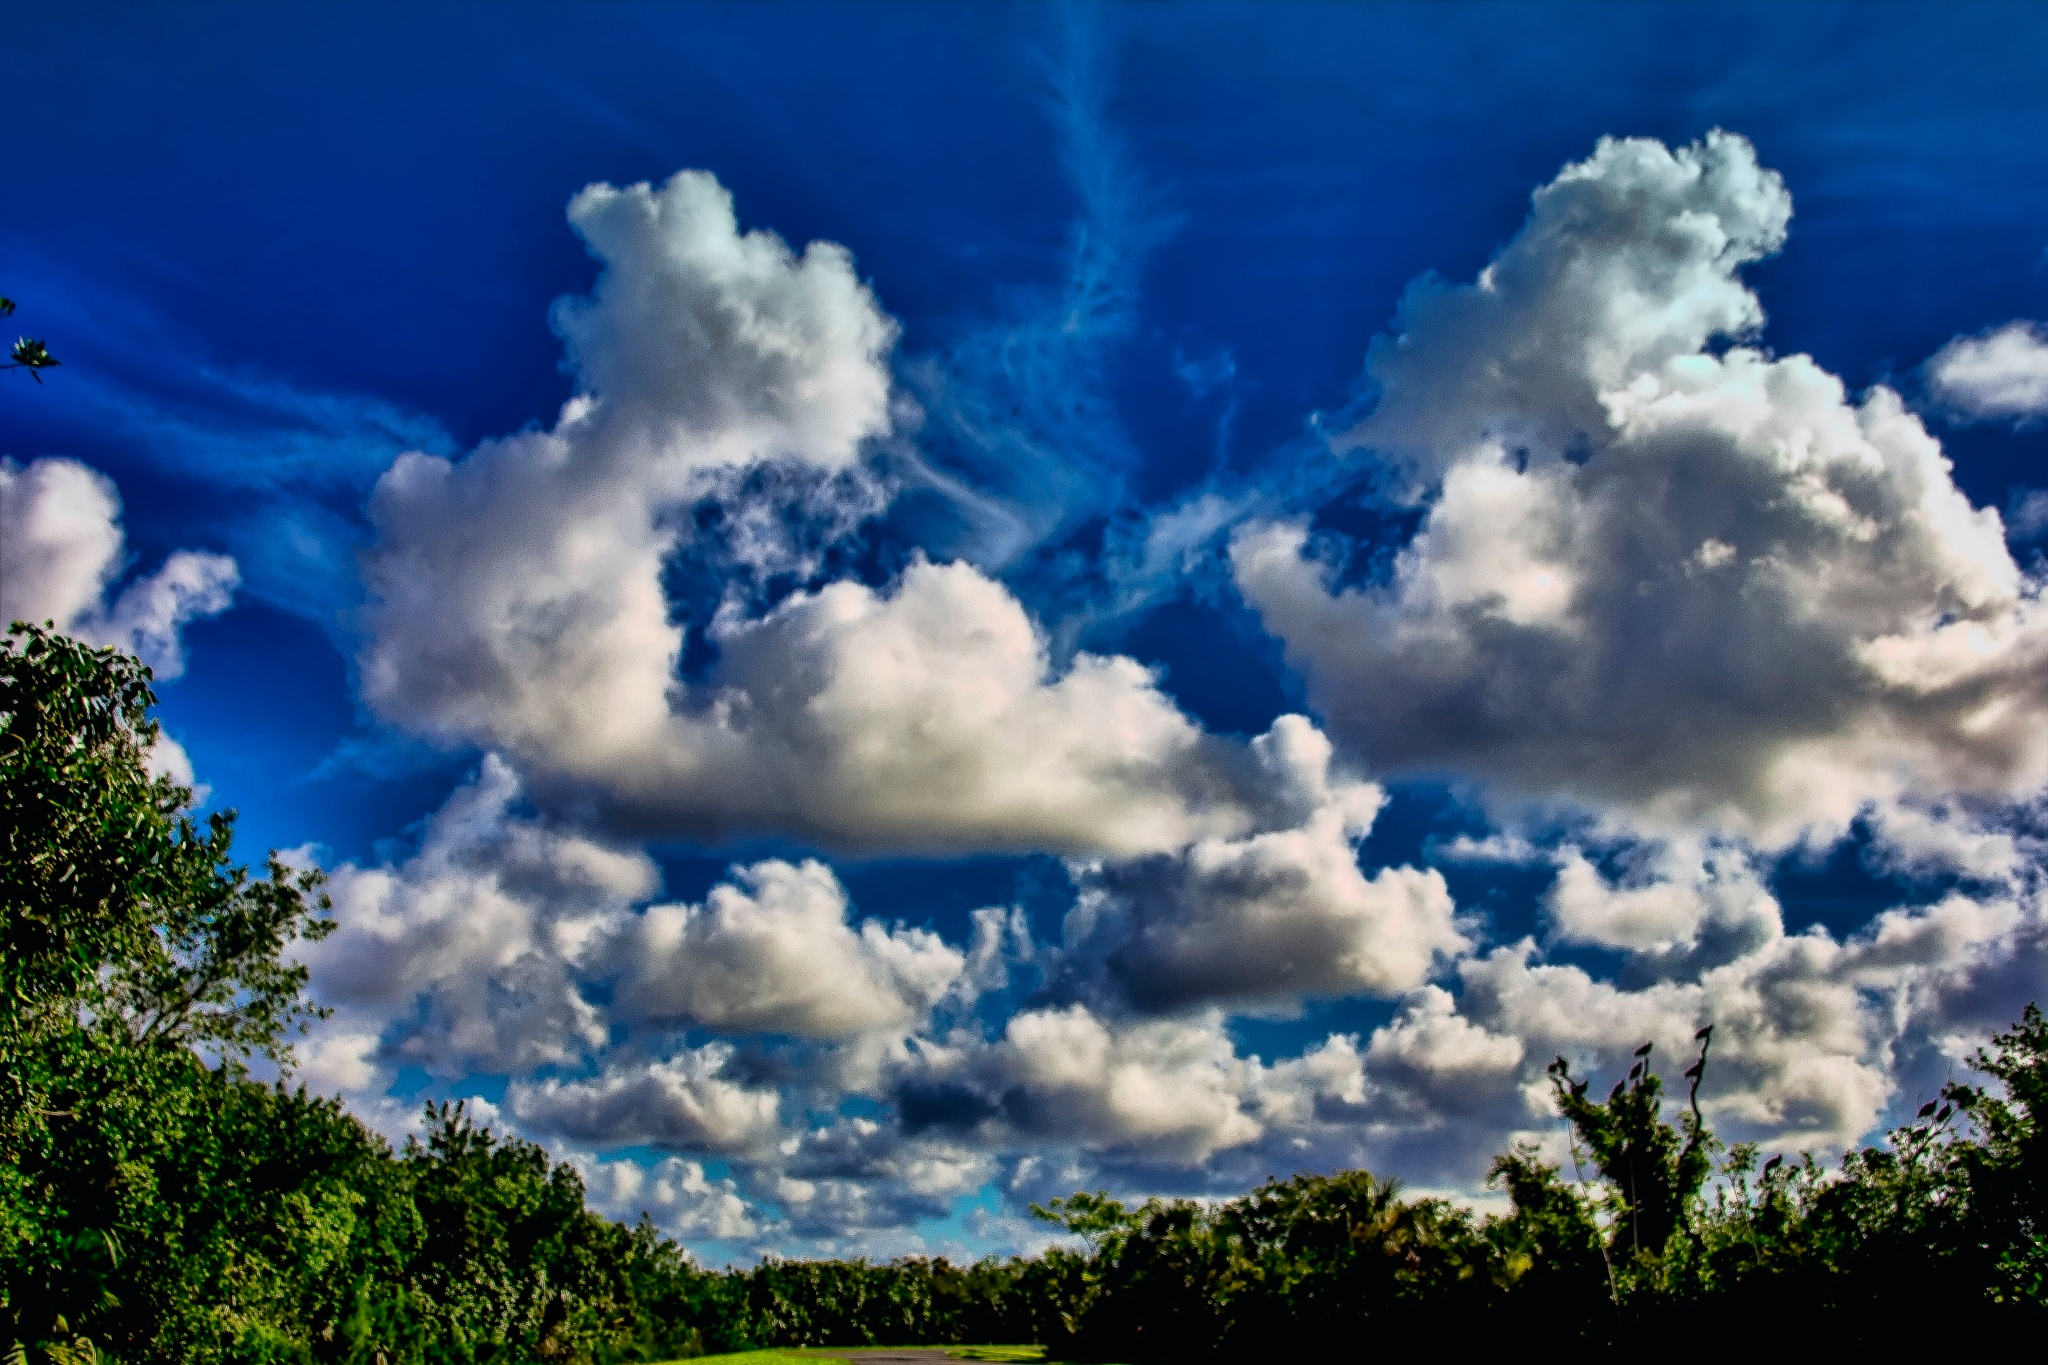 Clouds over the Everglades  by Mick Swengrosh